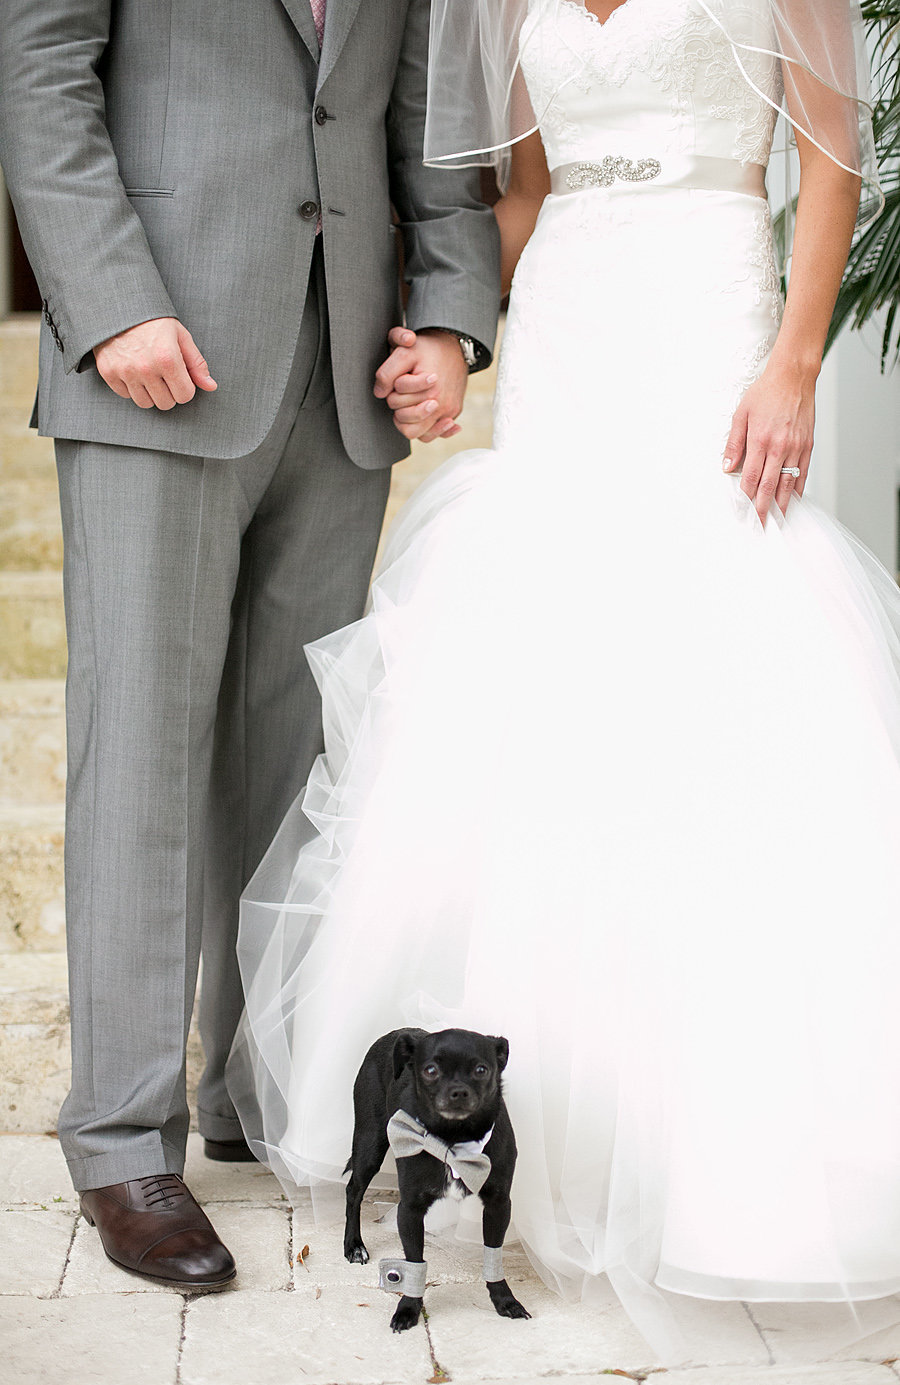 jupiter wedding with puppy ring bearer, dog at wedding